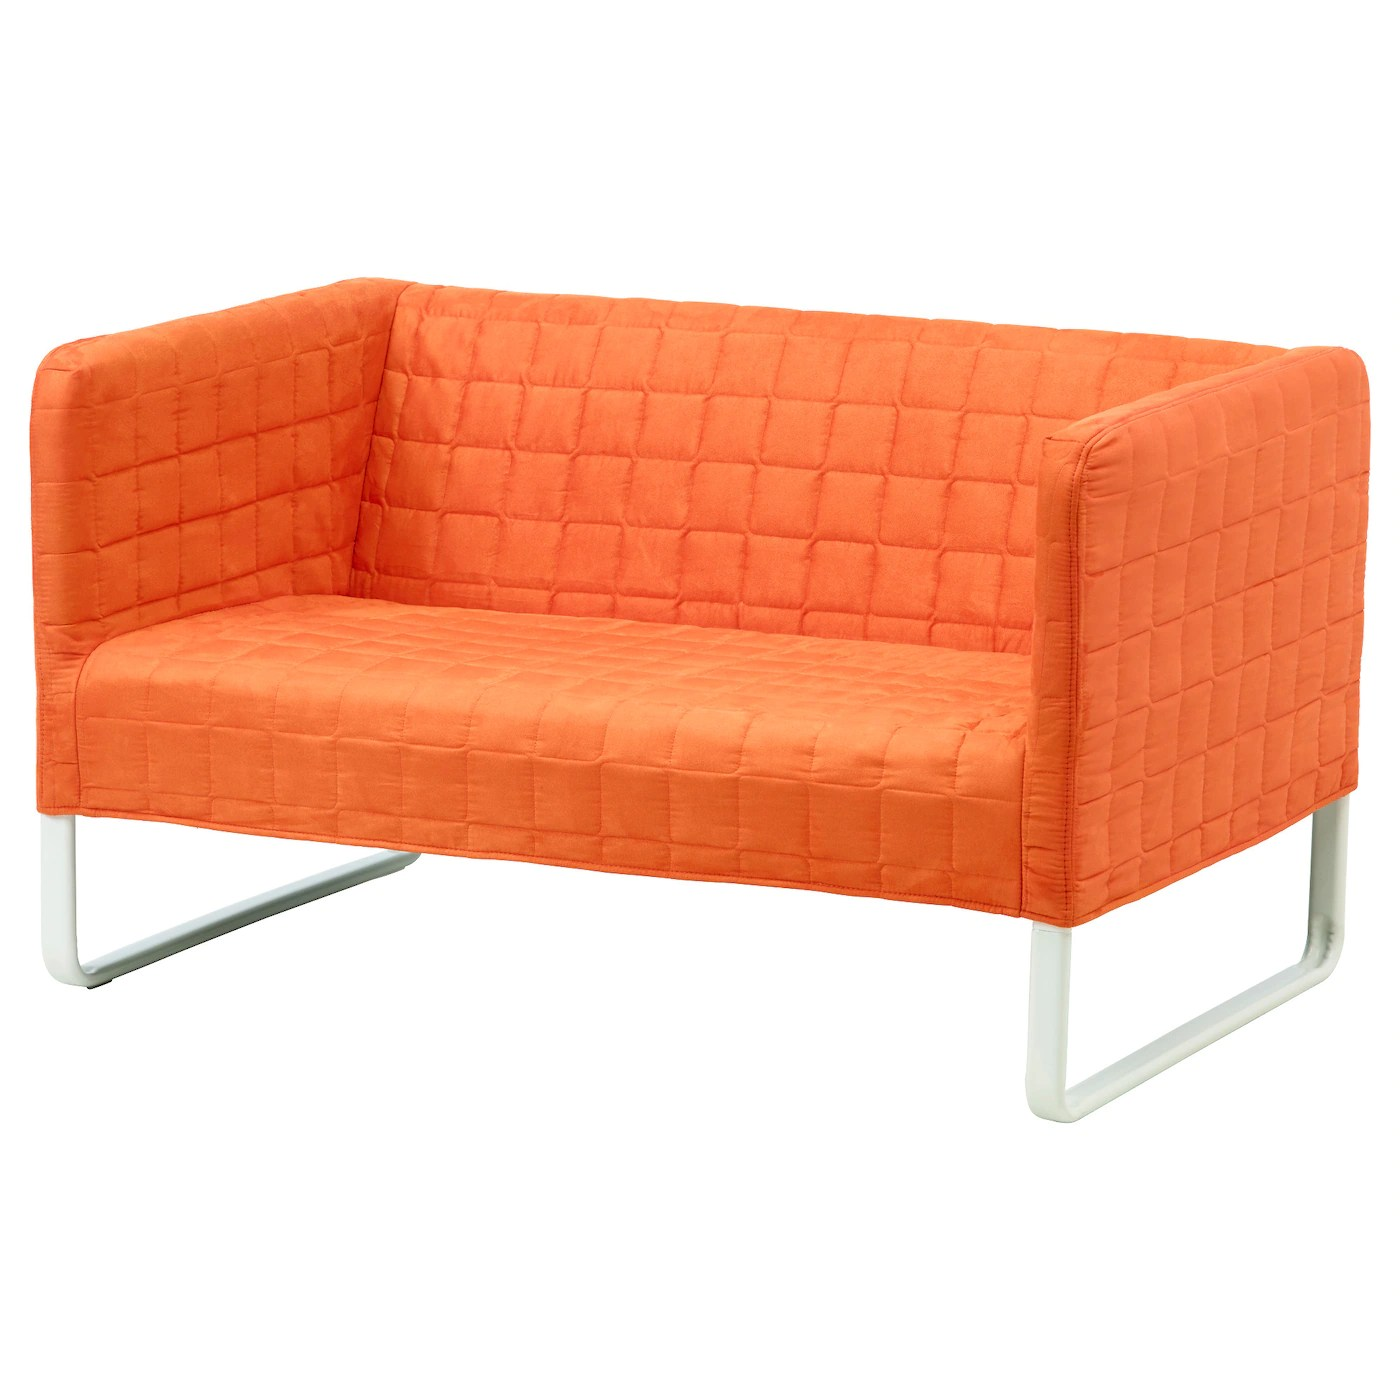 Ikea Sofa 2 Knopparp 2 Seat Sofa Orange Ikea